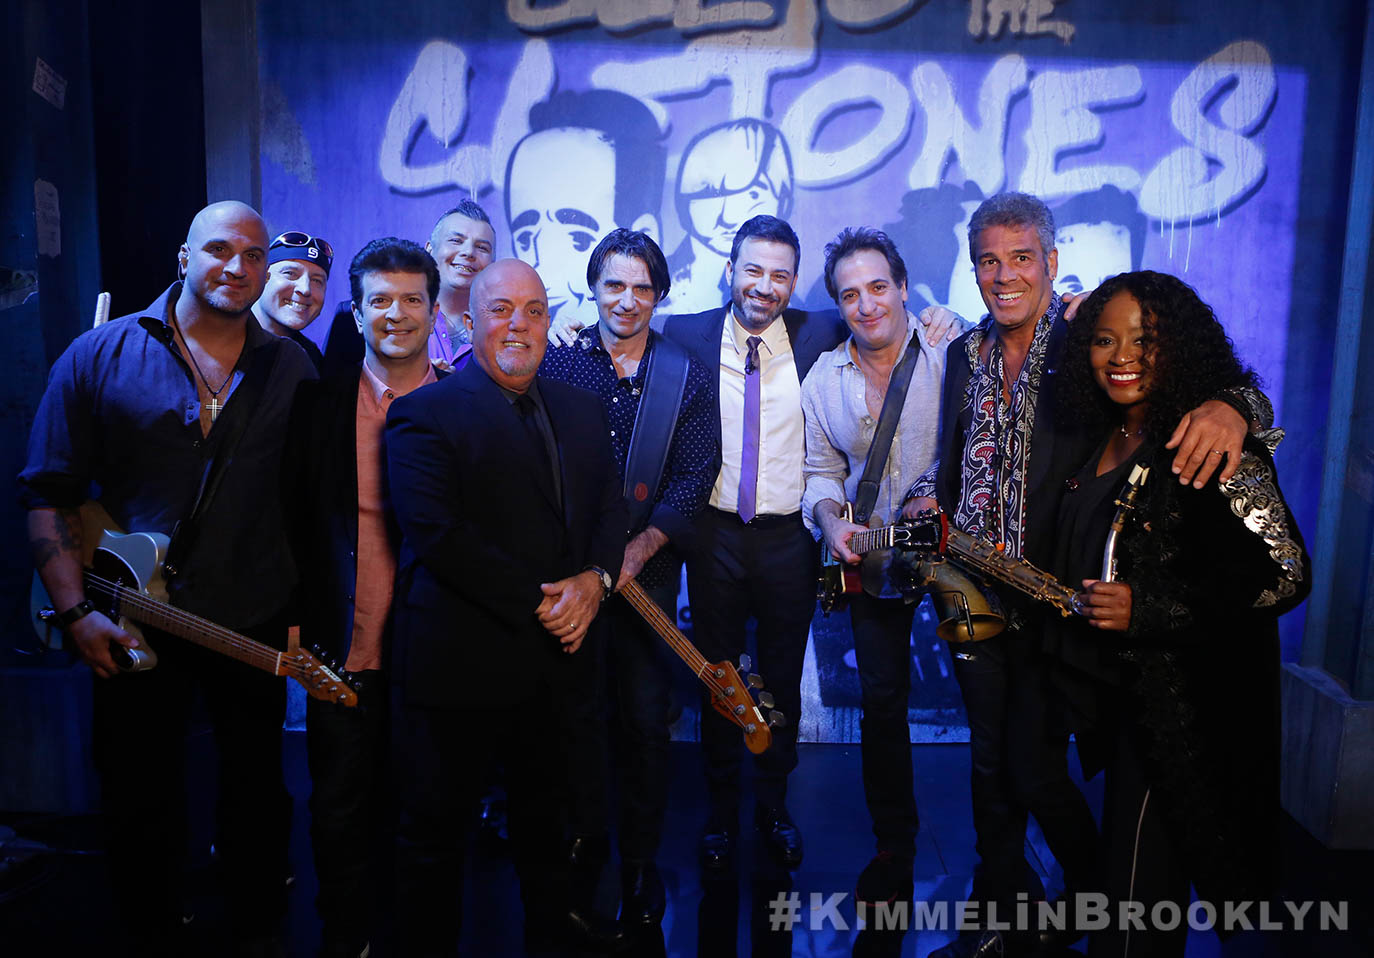 Billy Joel at Jimmy Kimmel Live! October 19, 2017 with Mike DelGuidice, Chuck Burgi, Dave Rosenthal, Carl Fischer, Andy Cichon, Tommy Byrnes, Mark Rivera and Crystal Taliefero